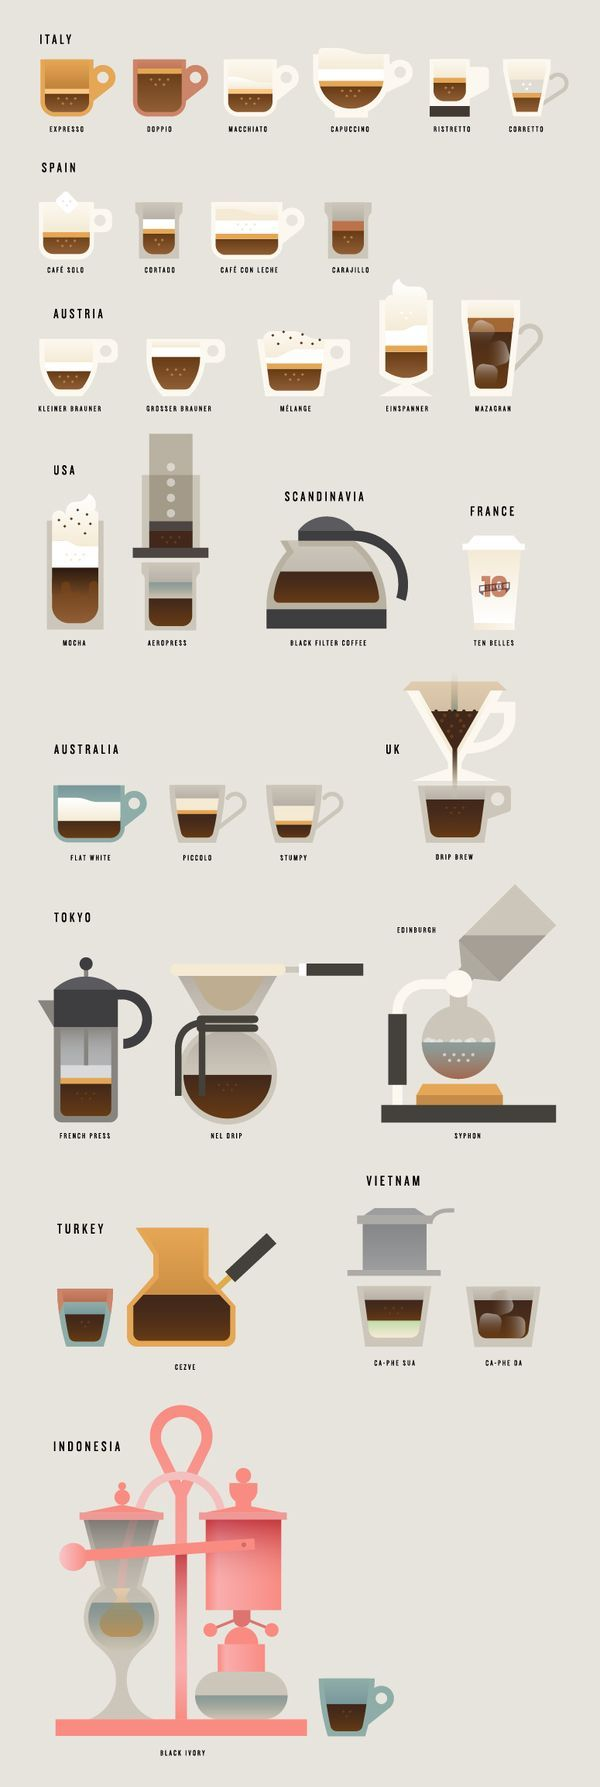 The world of coffee. Pinning to show to Nightwolf later.